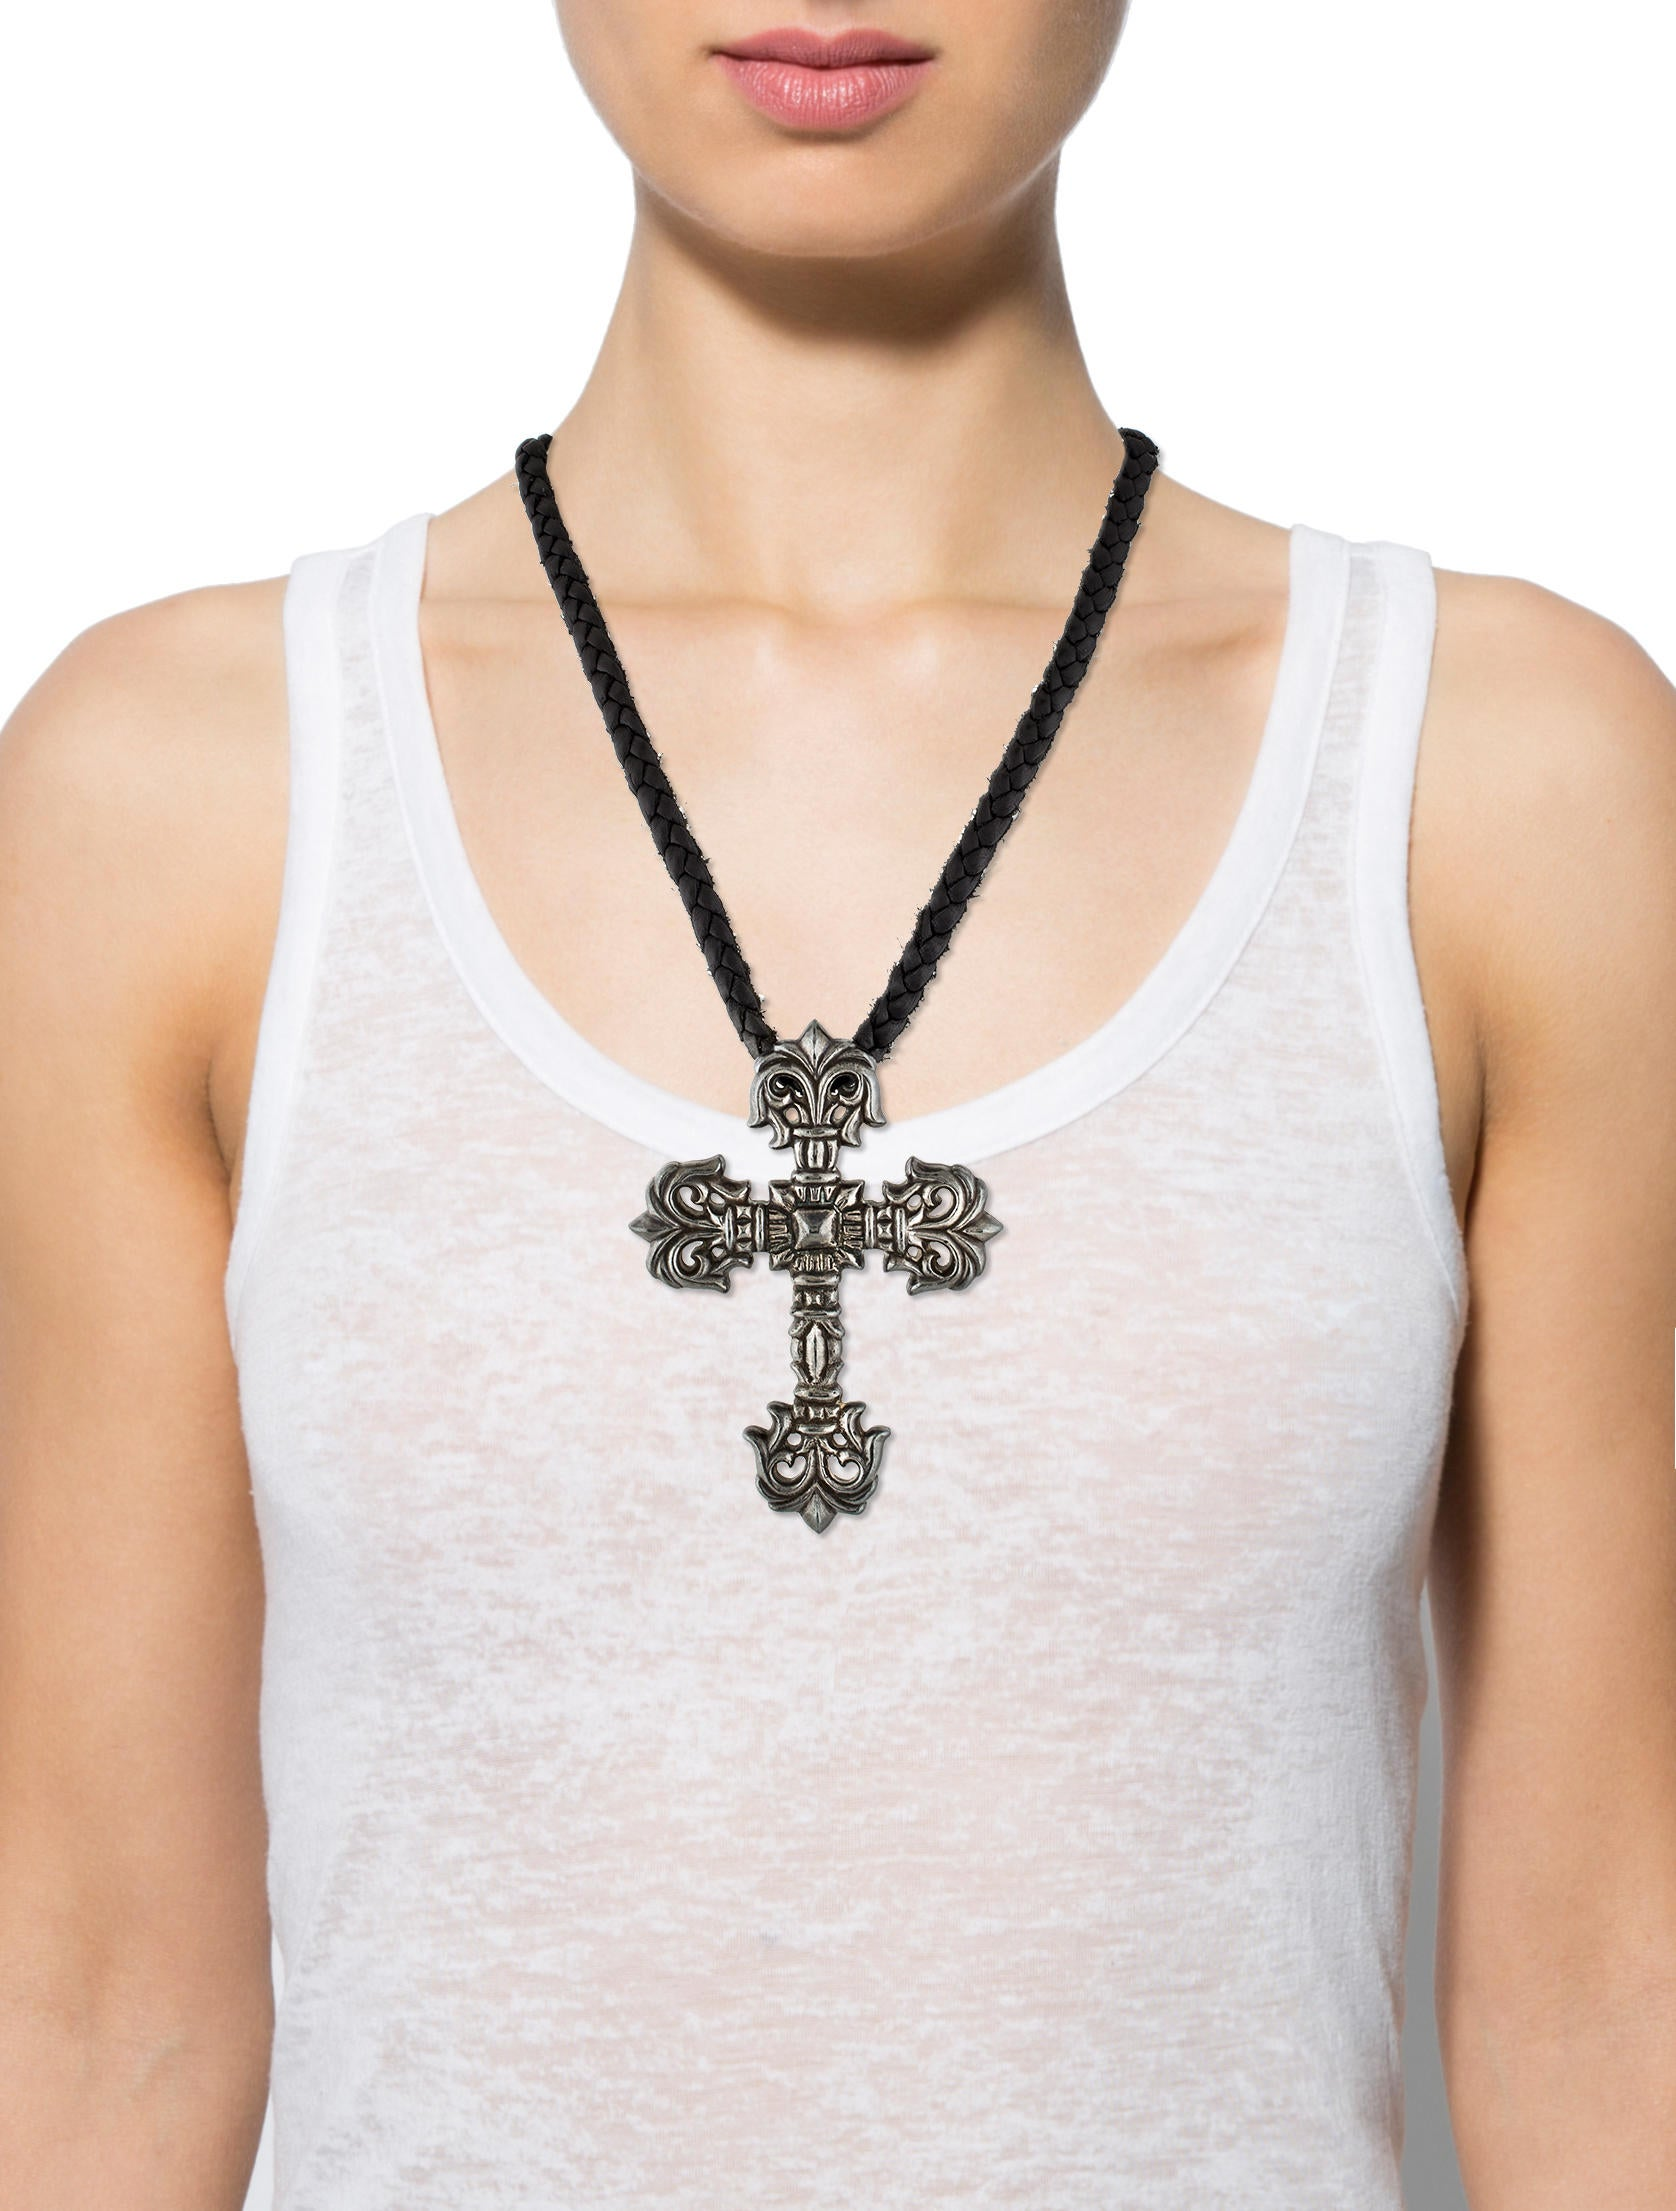 Shop cross pendant jewelry at Neiman Marcus, where you will find free shipping on the latest in fashion from top designers. Fantasia by DeSerio Large CZ Cross Pendant Necklace Details Fantasia by DeSerio large cross pendant necklace. karat white gold plating over sterling silver with rhodium finish. Cubic zirconia, total carat weight.